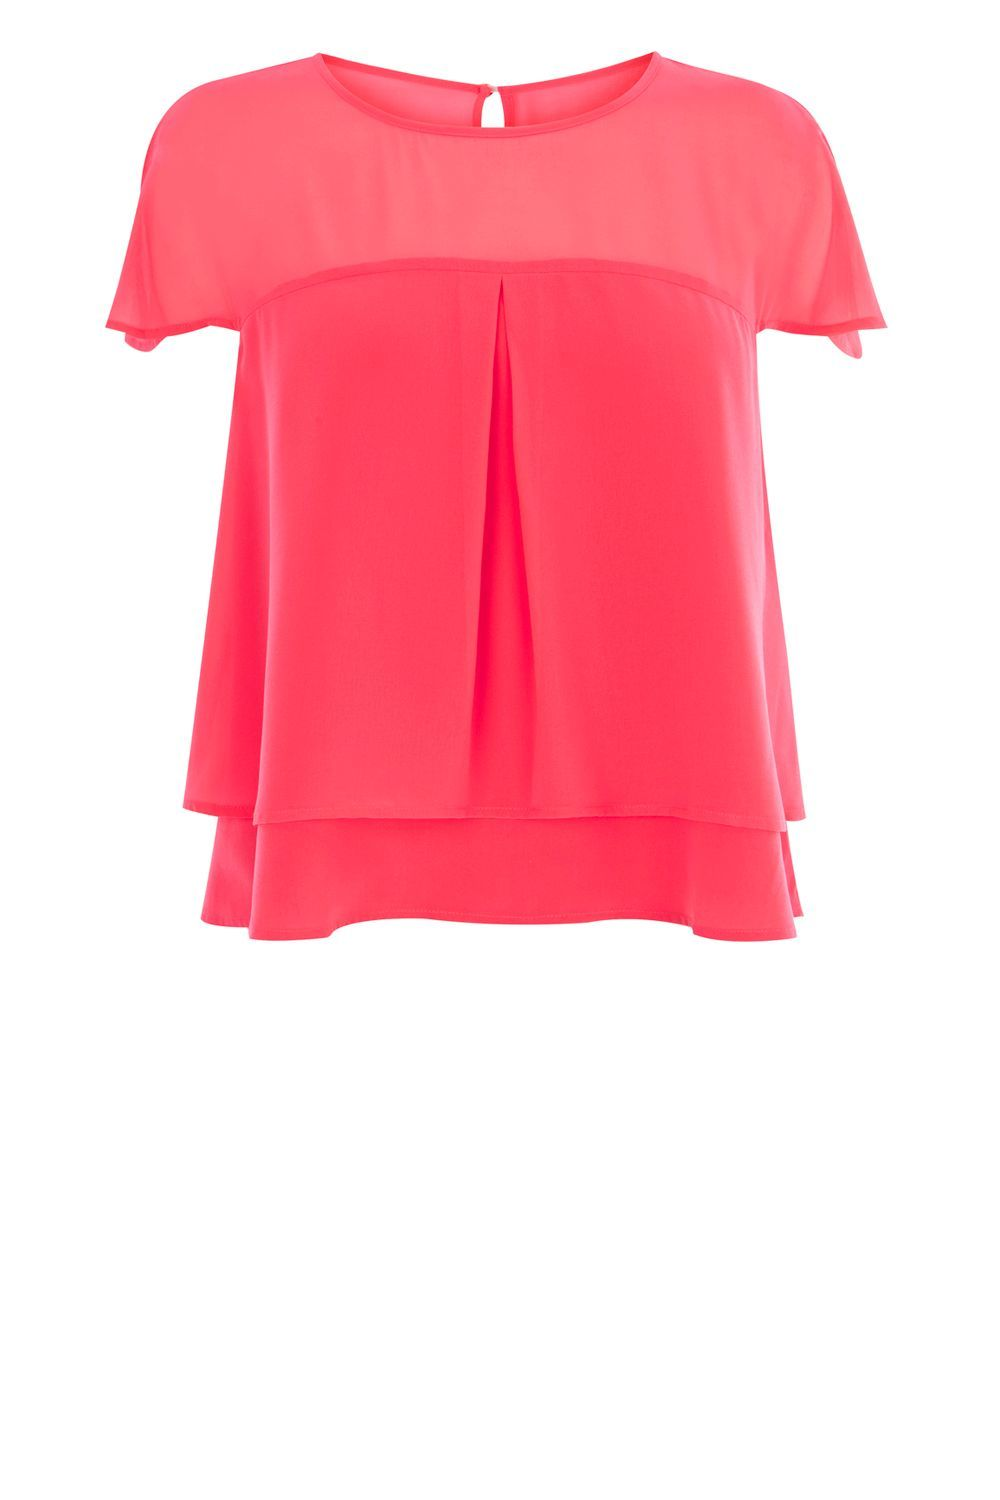 Evangaline Top, Pink - neckline: round neck; sleeve style: capped; pattern: plain; predominant colour: pink; occasions: evening, creative work; length: standard; style: top; fibres: polyester/polyamide - 100%; fit: loose; back detail: keyhole/peephole detail at back; sleeve length: short sleeve; texture group: sheer fabrics/chiffon/organza etc.; pattern type: fabric; season: a/w 2016; wardrobe: highlight